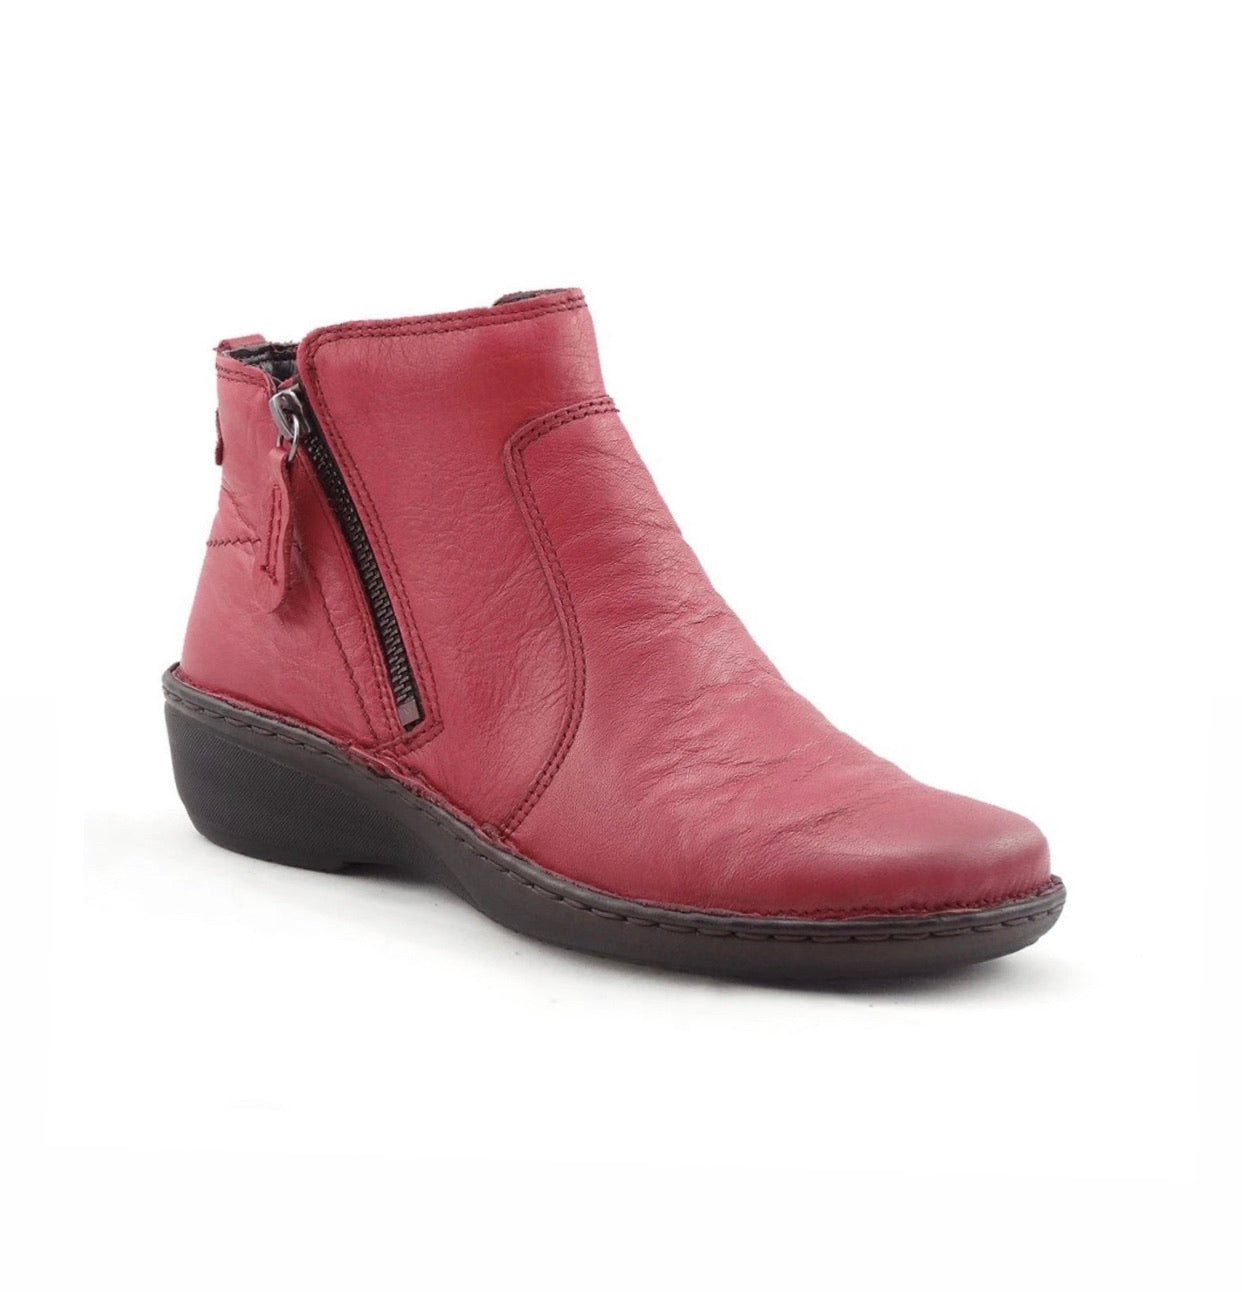 Relax Rosso Red 291-002 Double Zip Ankle Made In Albania